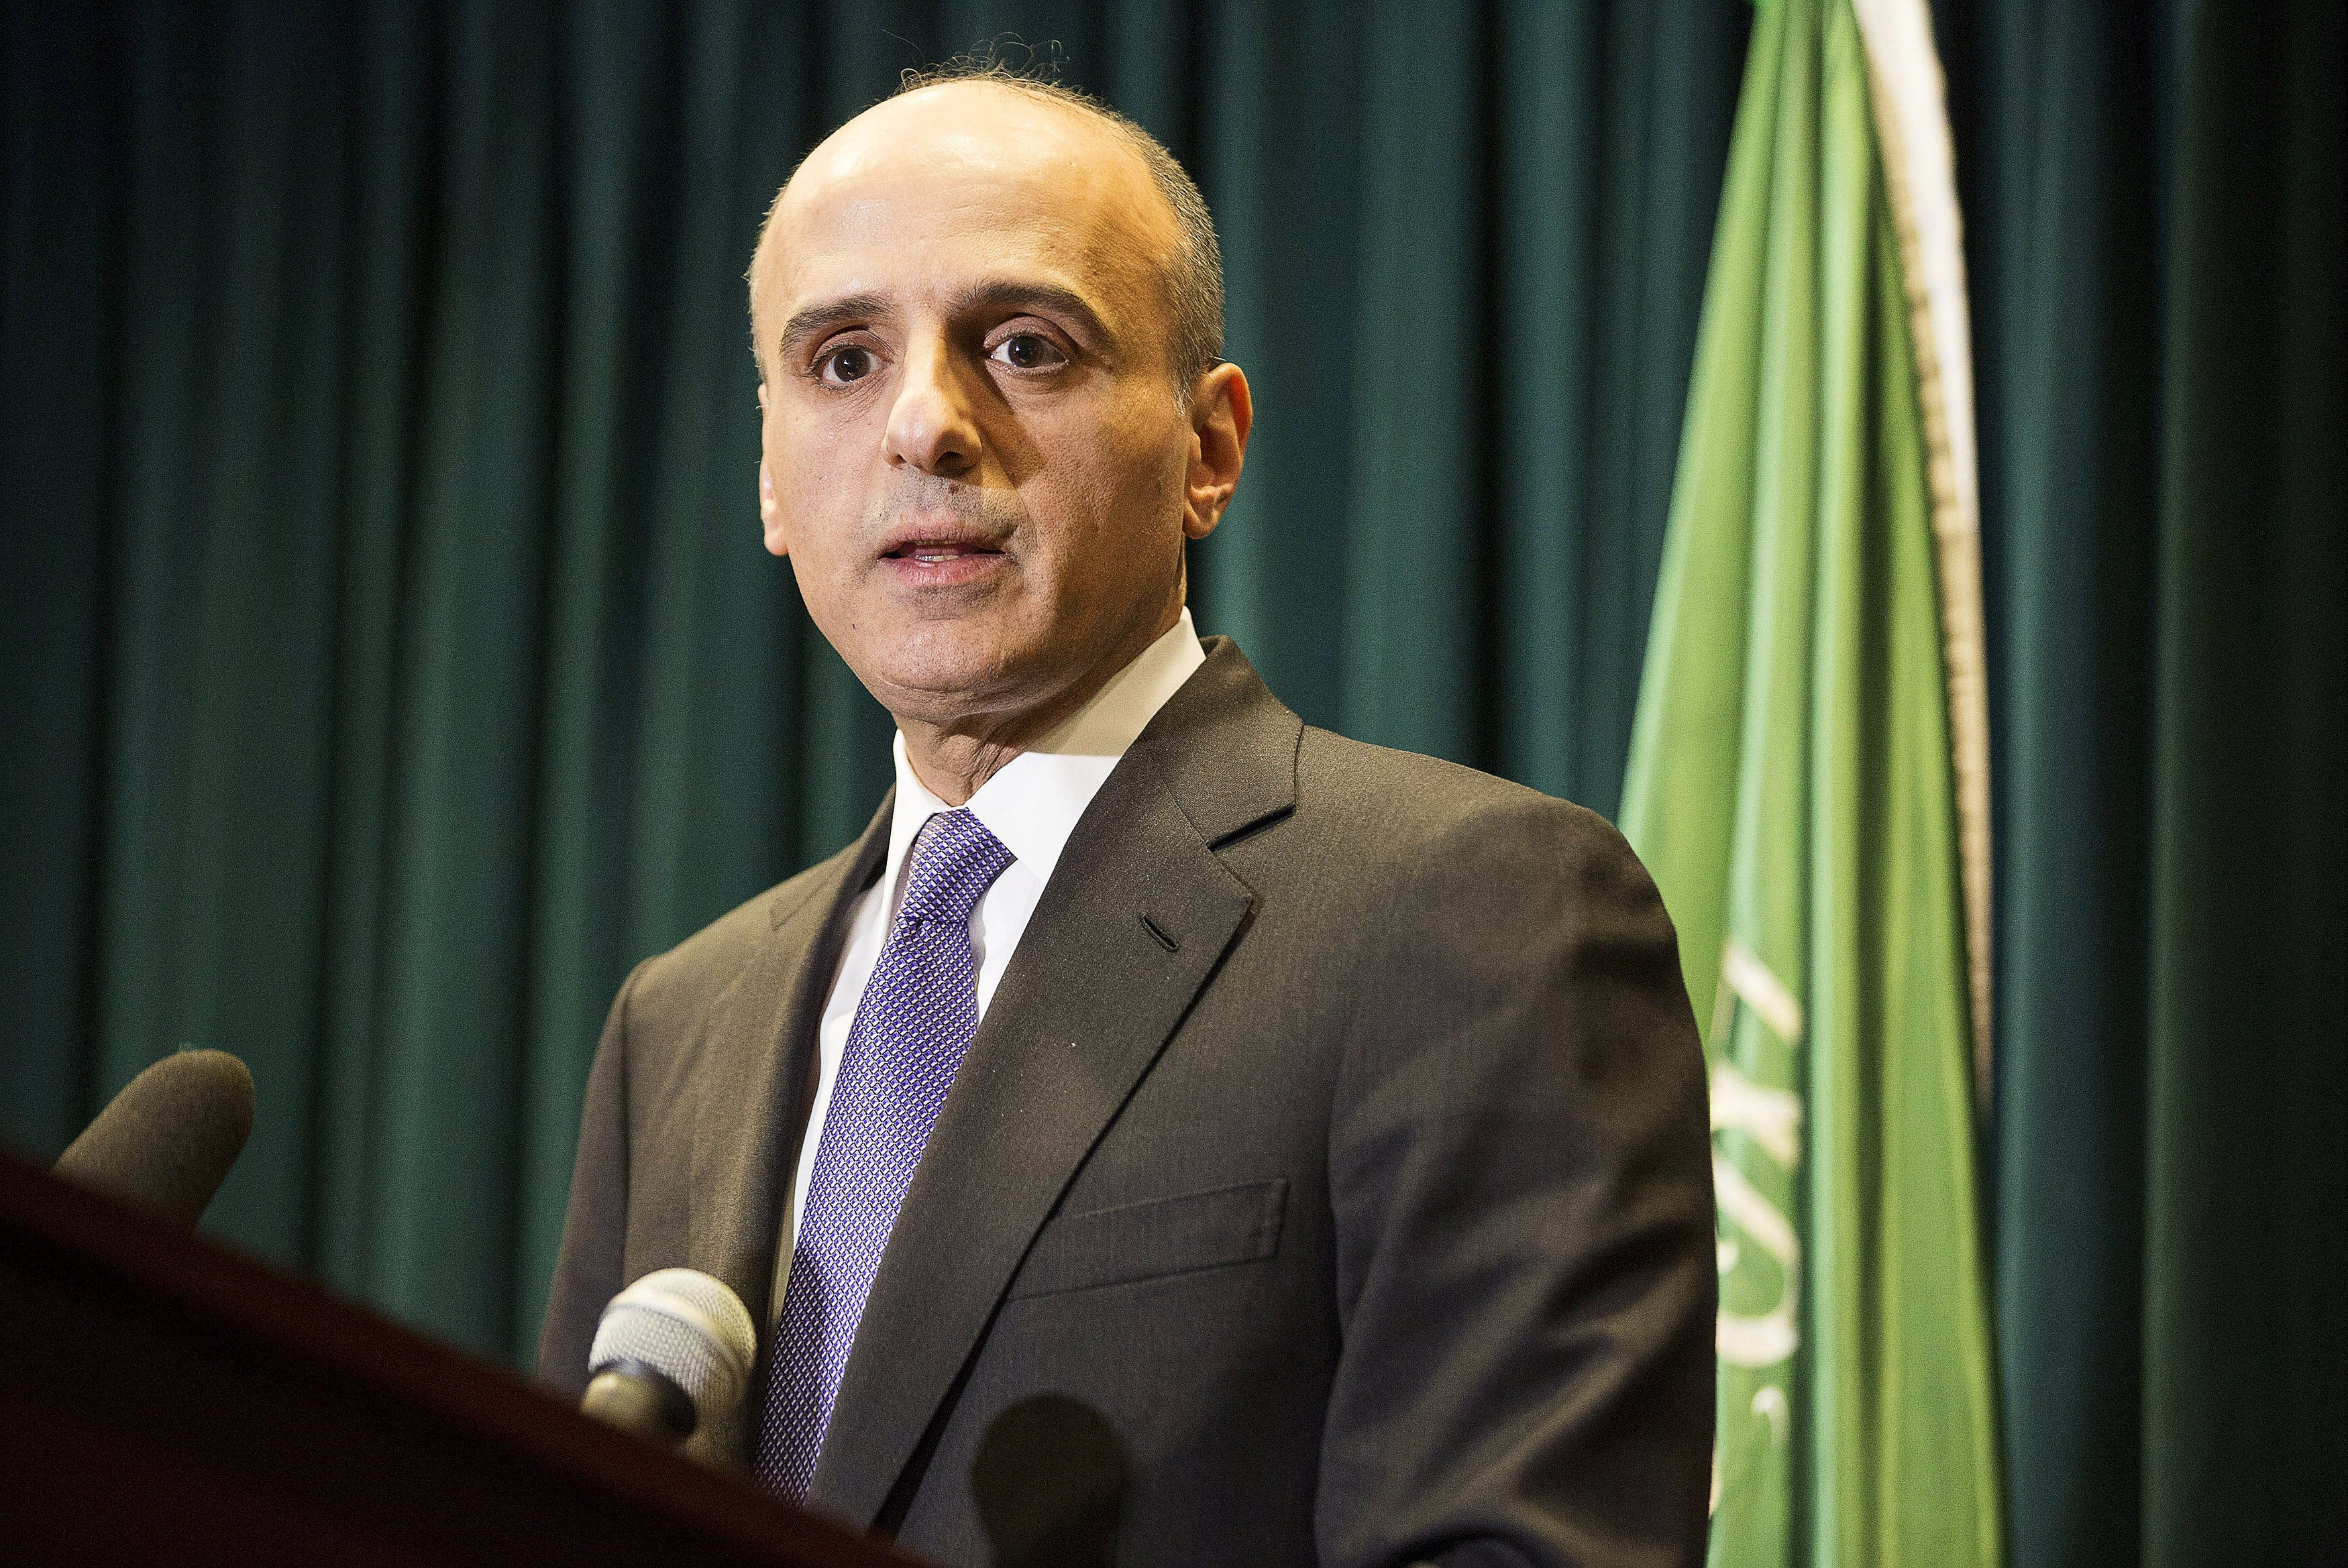 Saudi Ambassador to the United States Adel Al-Jubeir speaks about Saudi Arabia carrying out air strikes in Yemen against the Houthi militias who have seized control of the nation, during a news conference in Washington March 25, 2015. (Reuters)